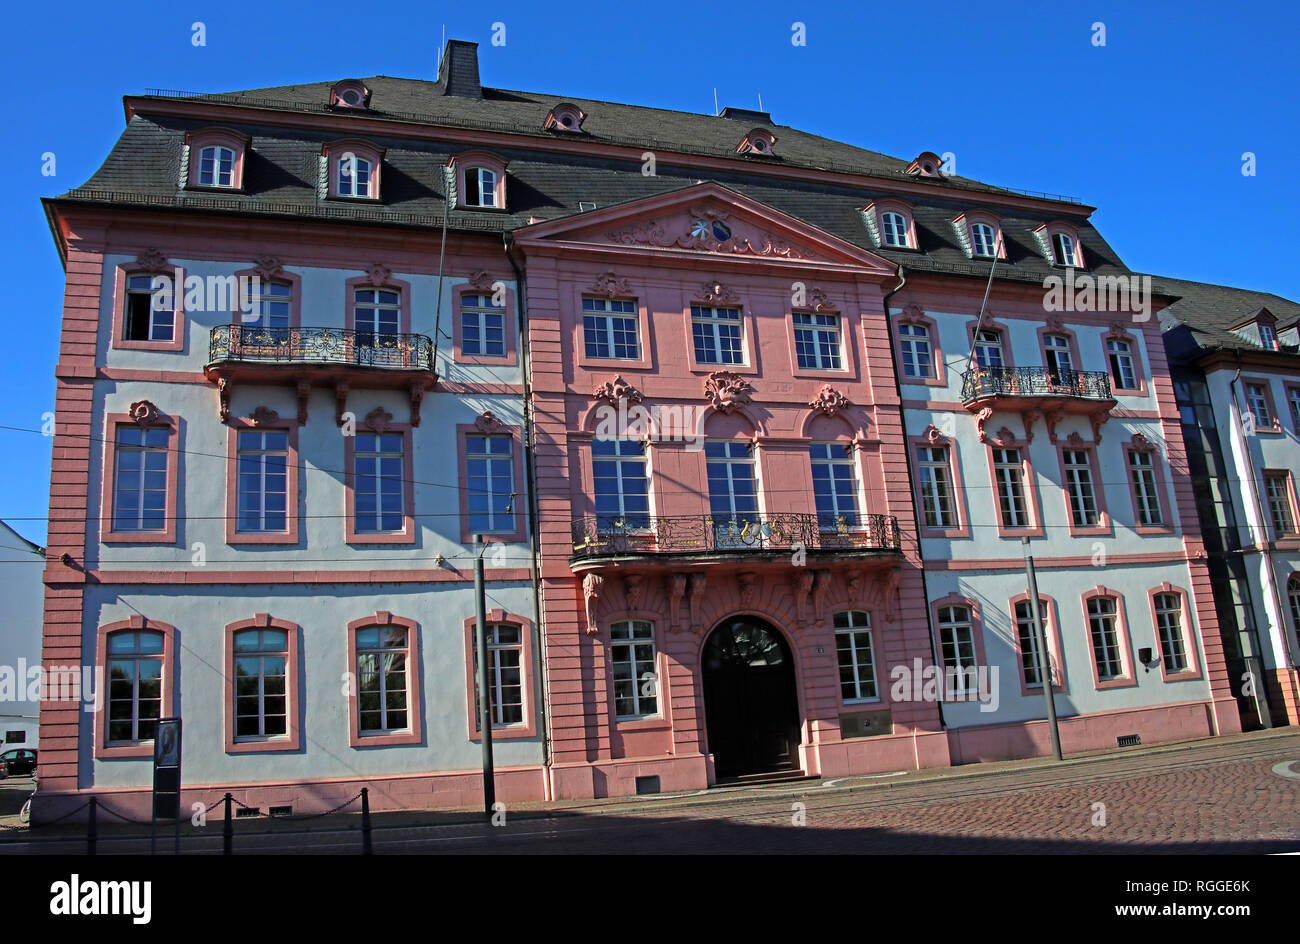 Ministry Of The Interior building, Bassenheimer Hof, Rhineland-Palatinate, Mainz, Germany, Europe - Stock Image